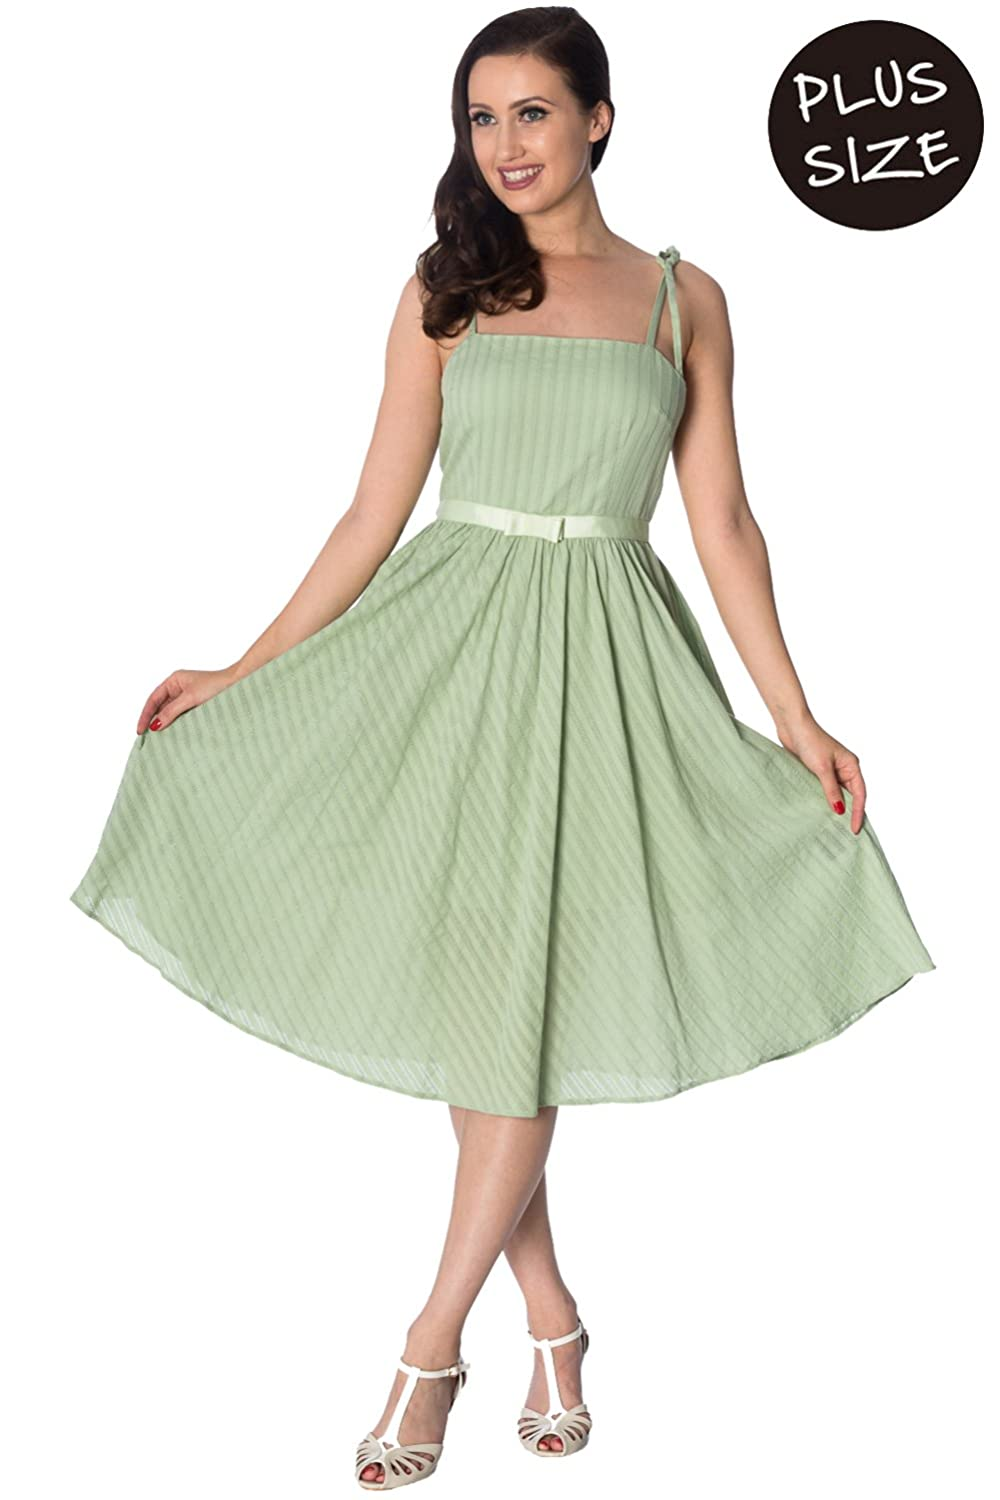 9cc35d50bd5c6 Banned Apparel Make A Wish Strappy Sundress Plus Size 4XL/Green at Amazon  Women's Clothing store: